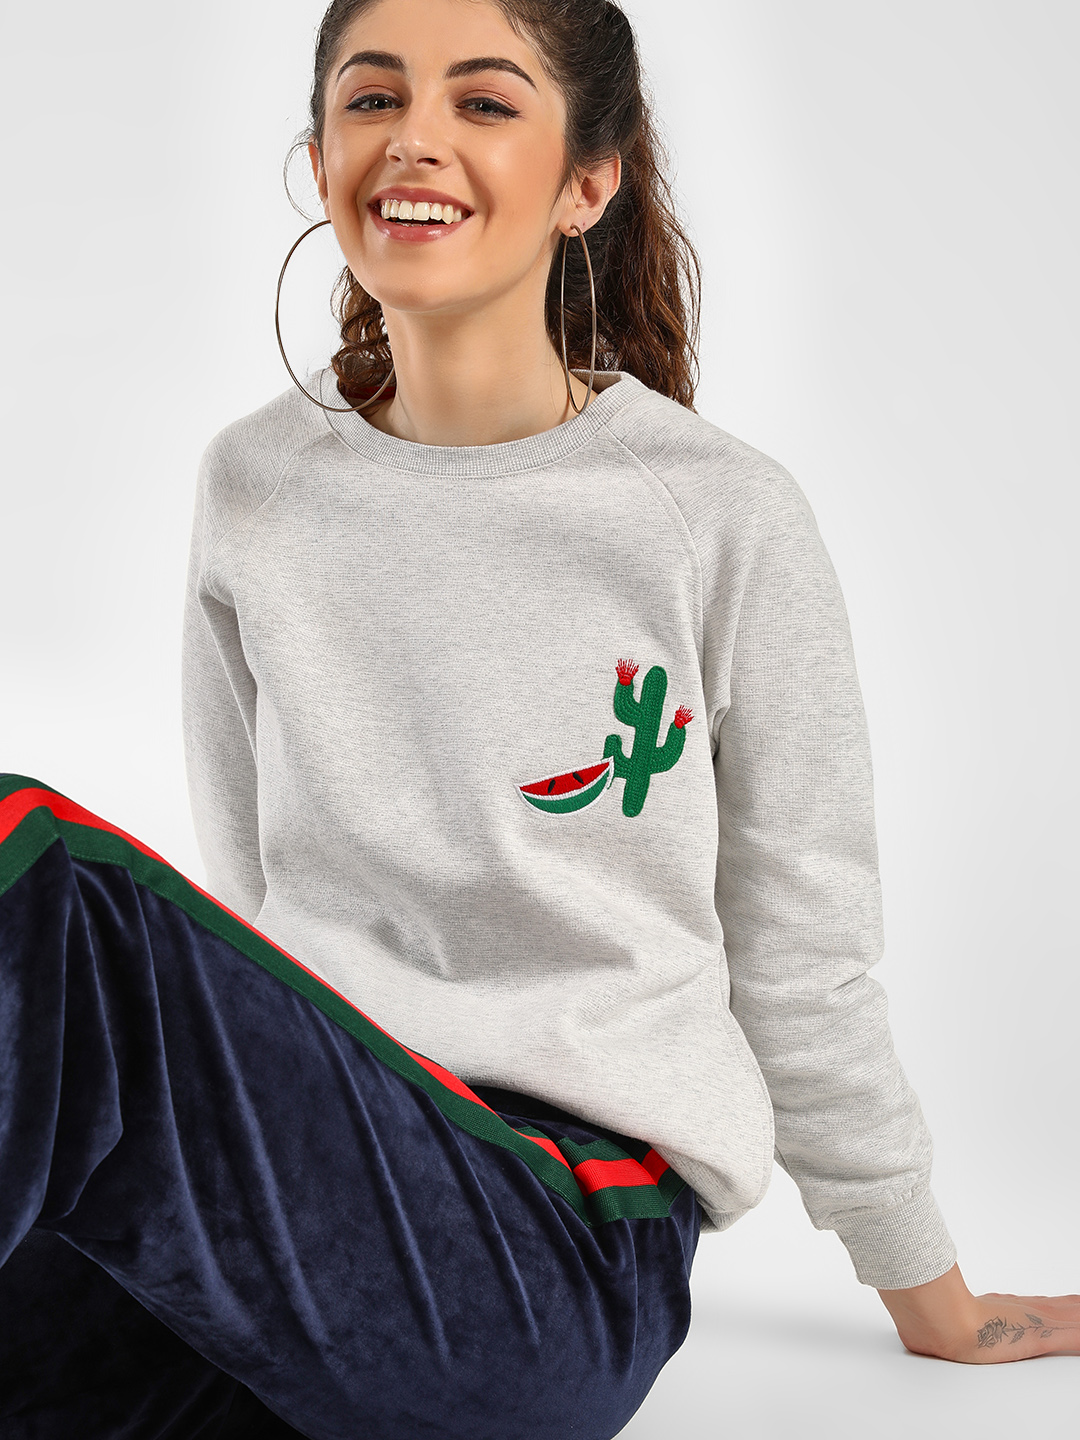 KOOVS White Shimmer Patch Embroidered Sweatshirt 1